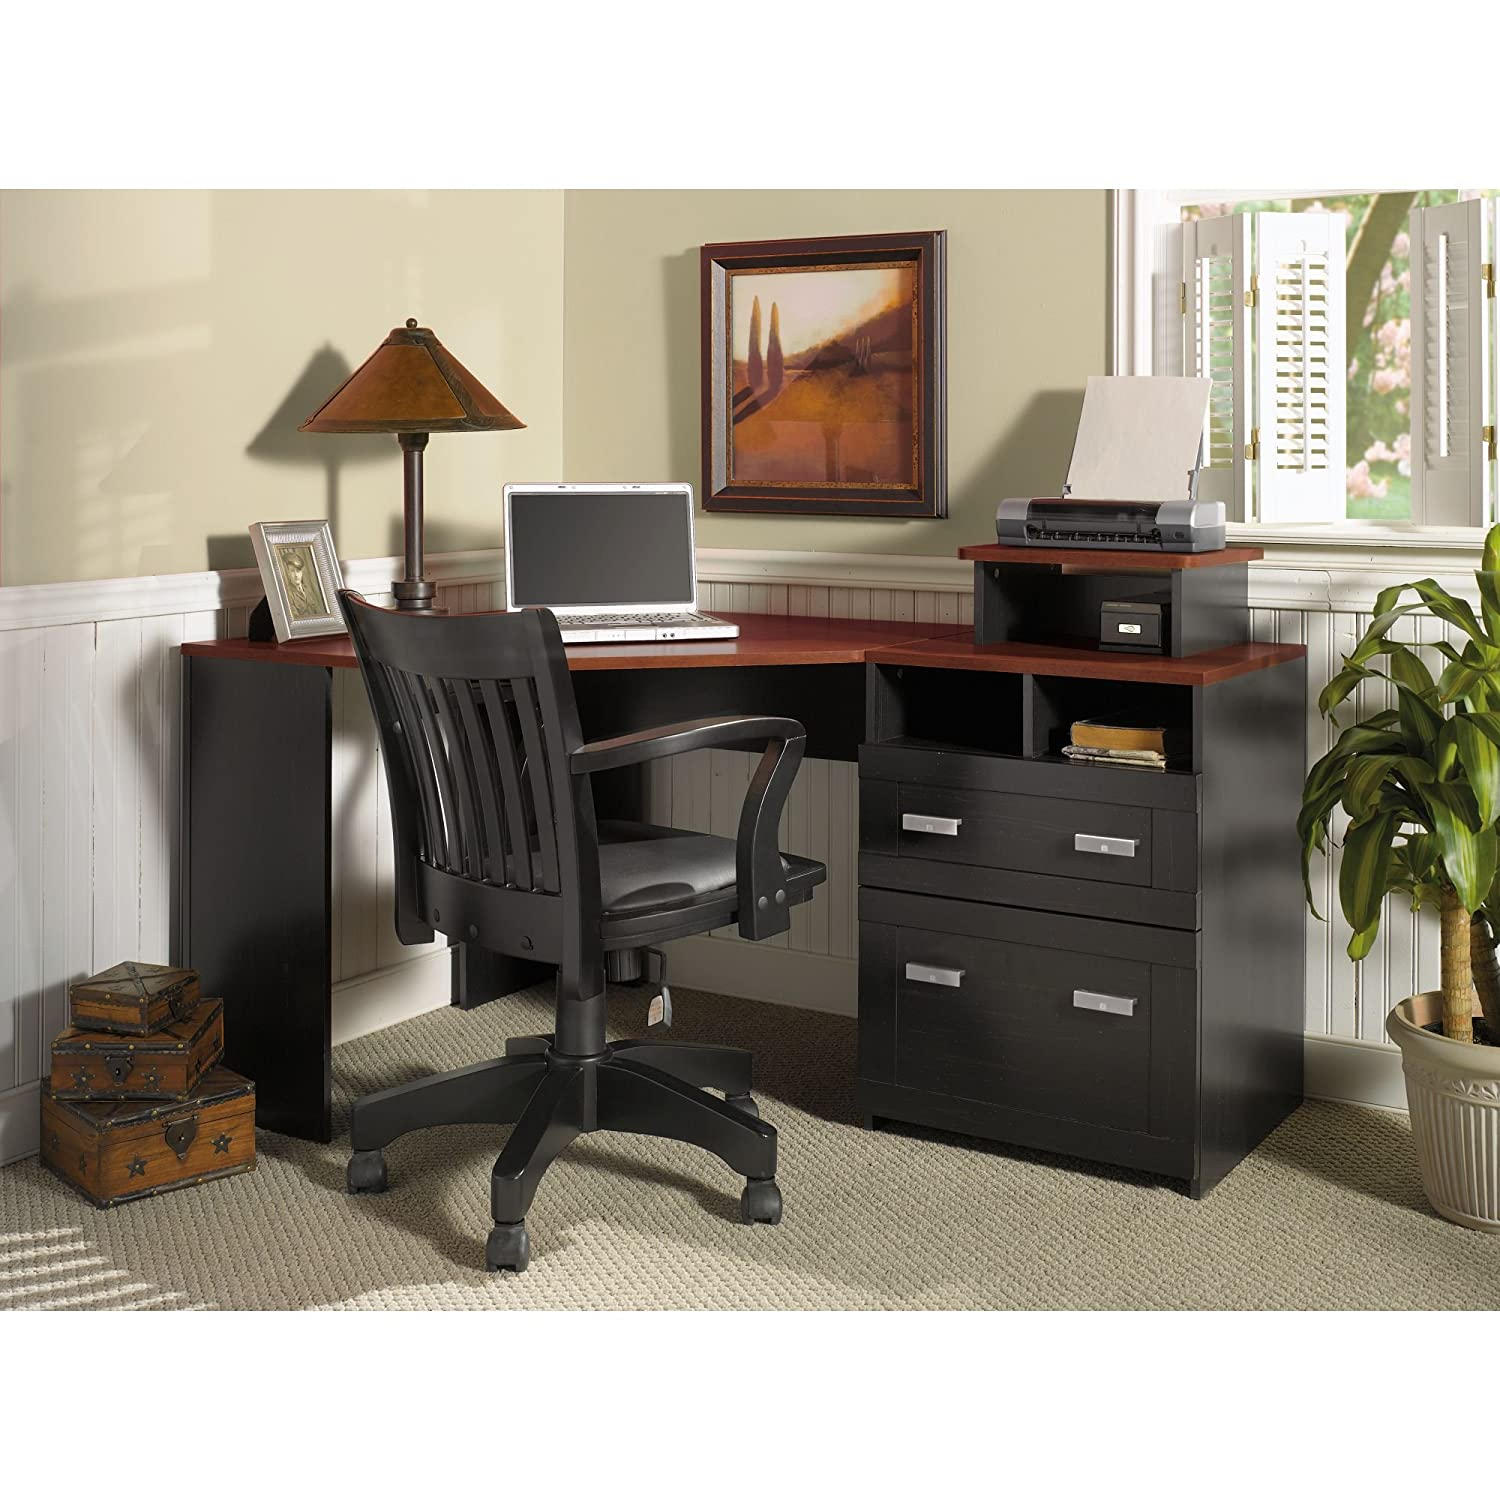 Wheaton Collection Reversible Corner Desk with Printer Stand